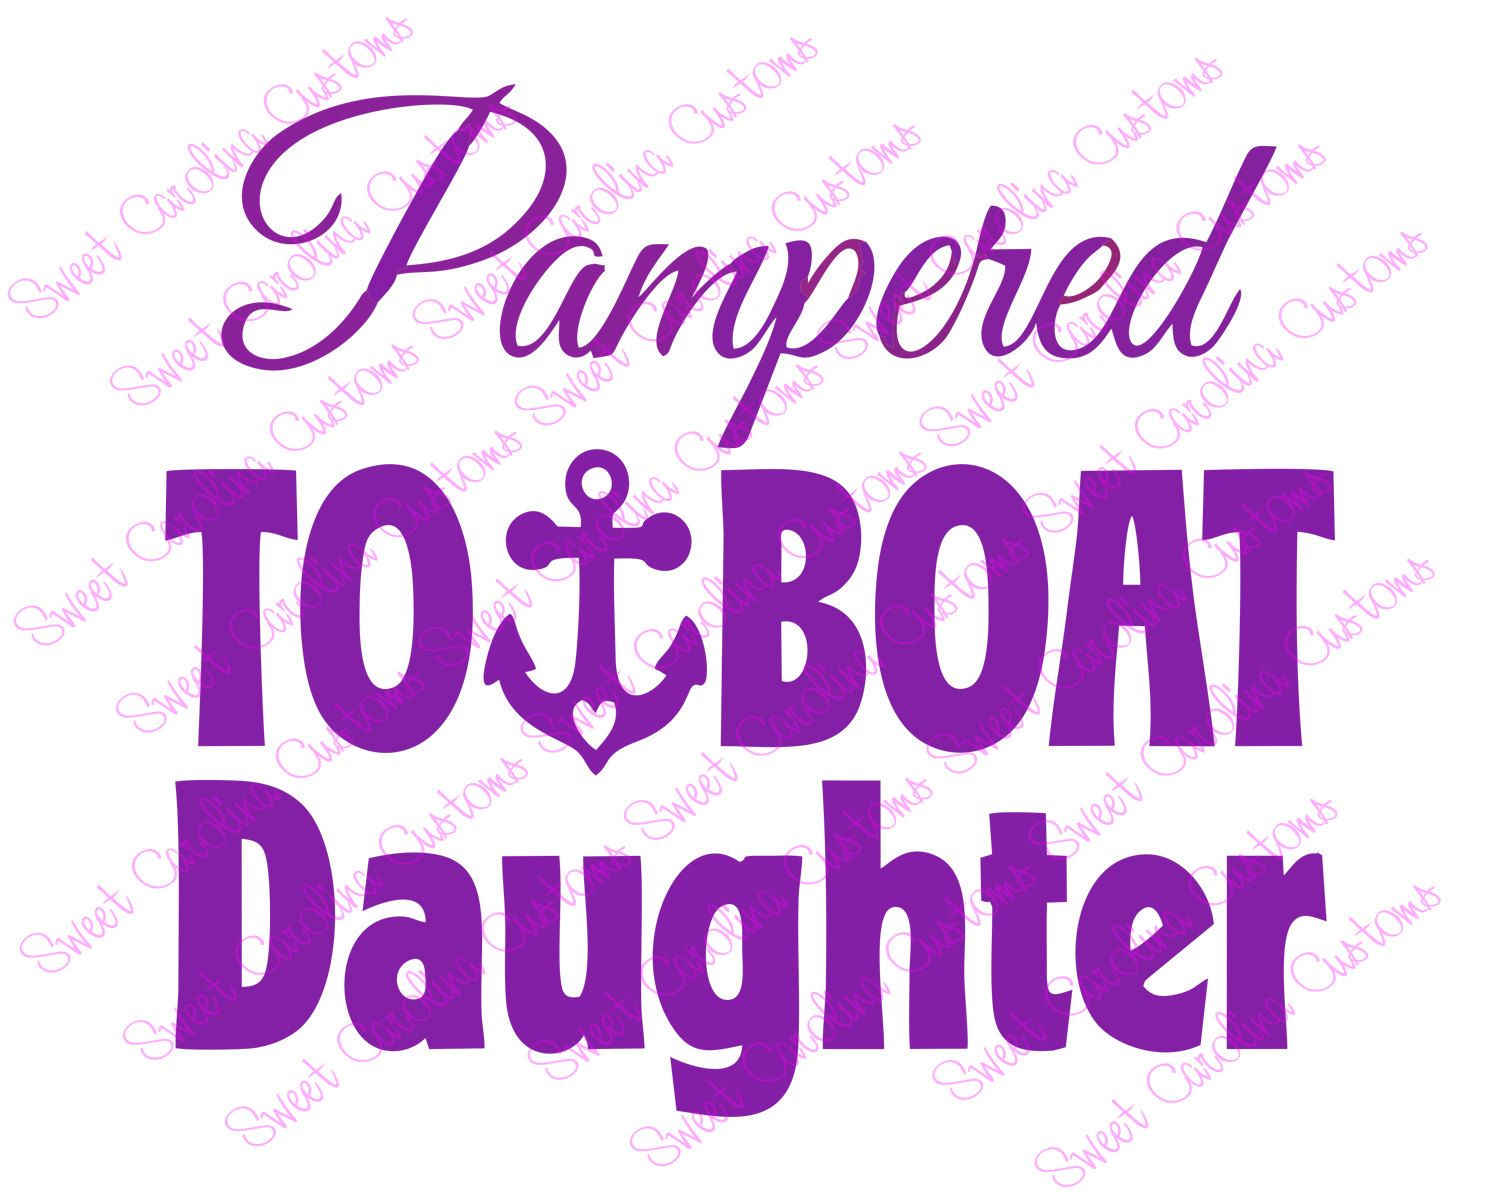 Pampered Towboat Daughter Car Decal - pinned by pin4etsy.com